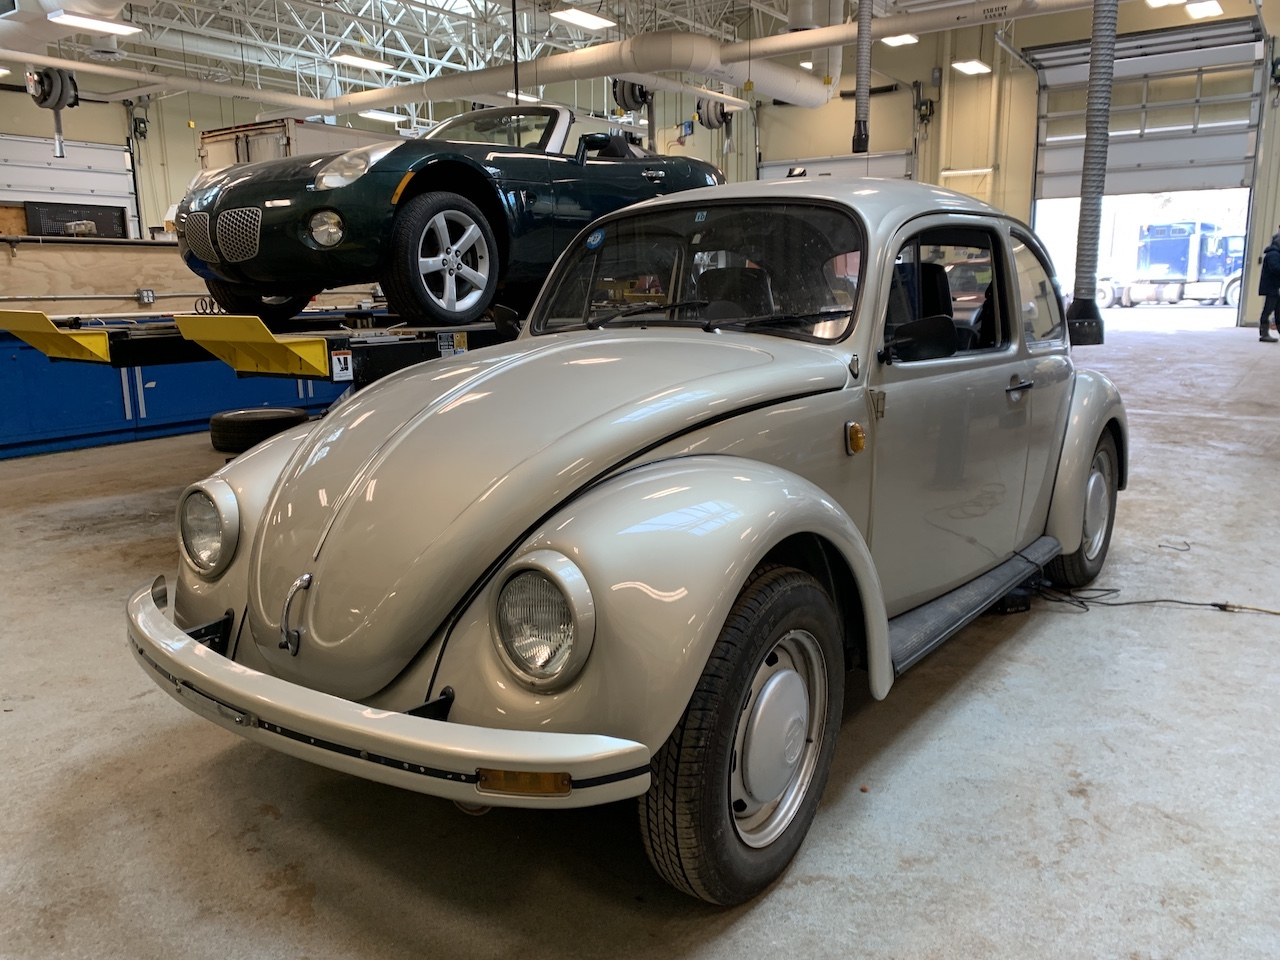 Nova Scotia Community College electric VW Beetle